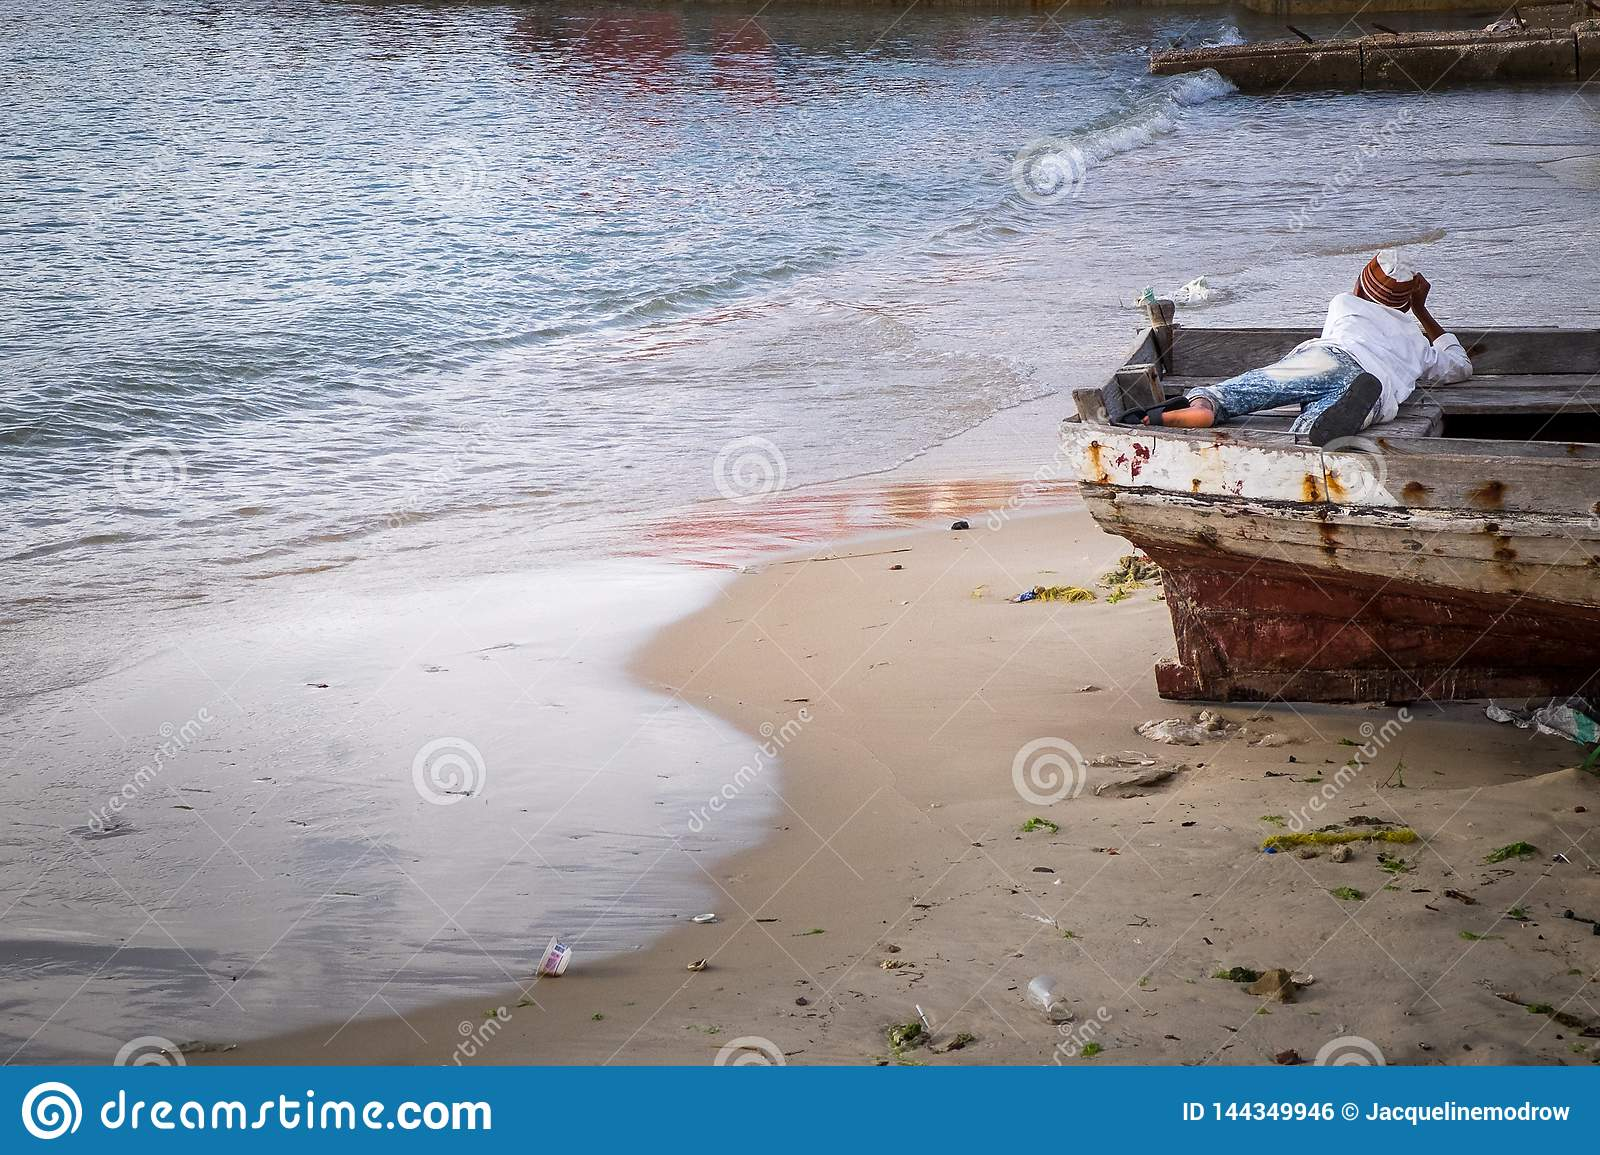 A young boy laying in a boat appearing to be in deep thought